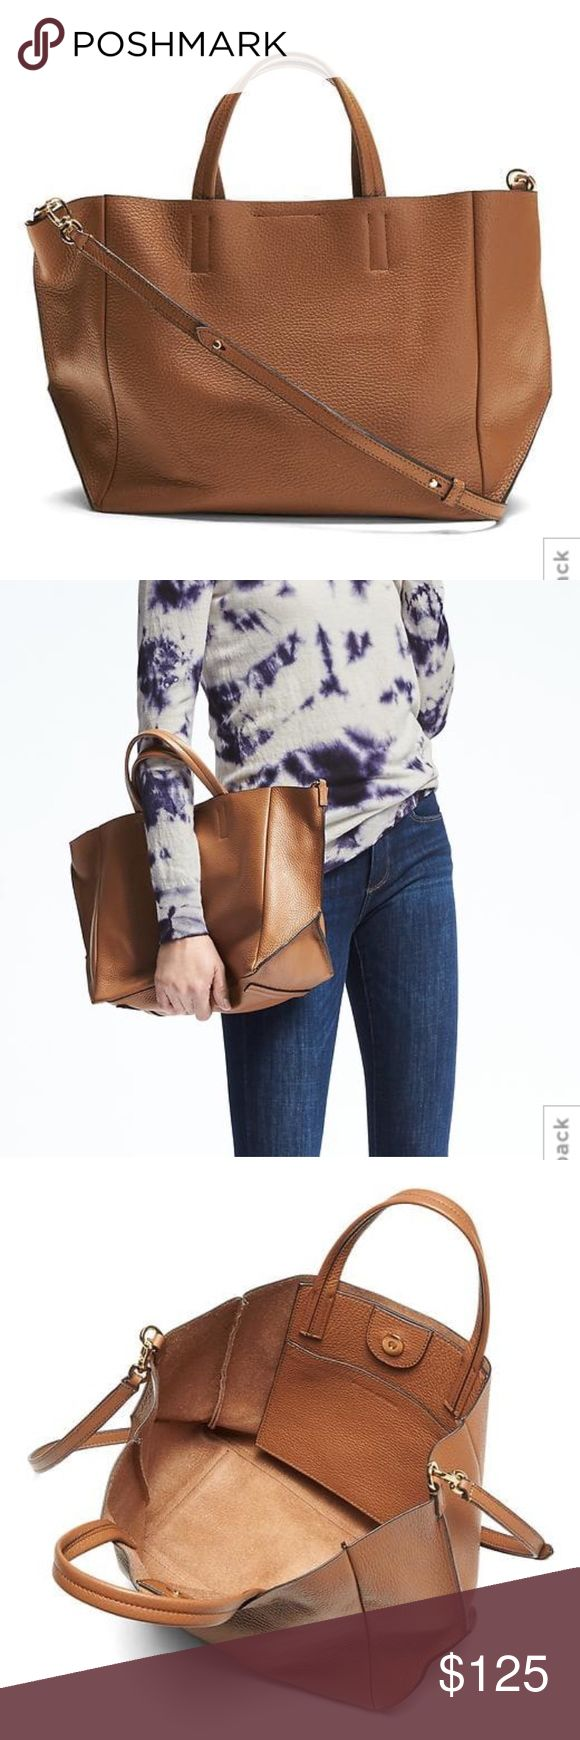 NWT Banana Republic Leather Slouch Tote New with tags. Banana Republic Portfolio Italian Leather Slouch Tote. Never used. Currently being sold in store @ full price Banana Republic Bags Totes